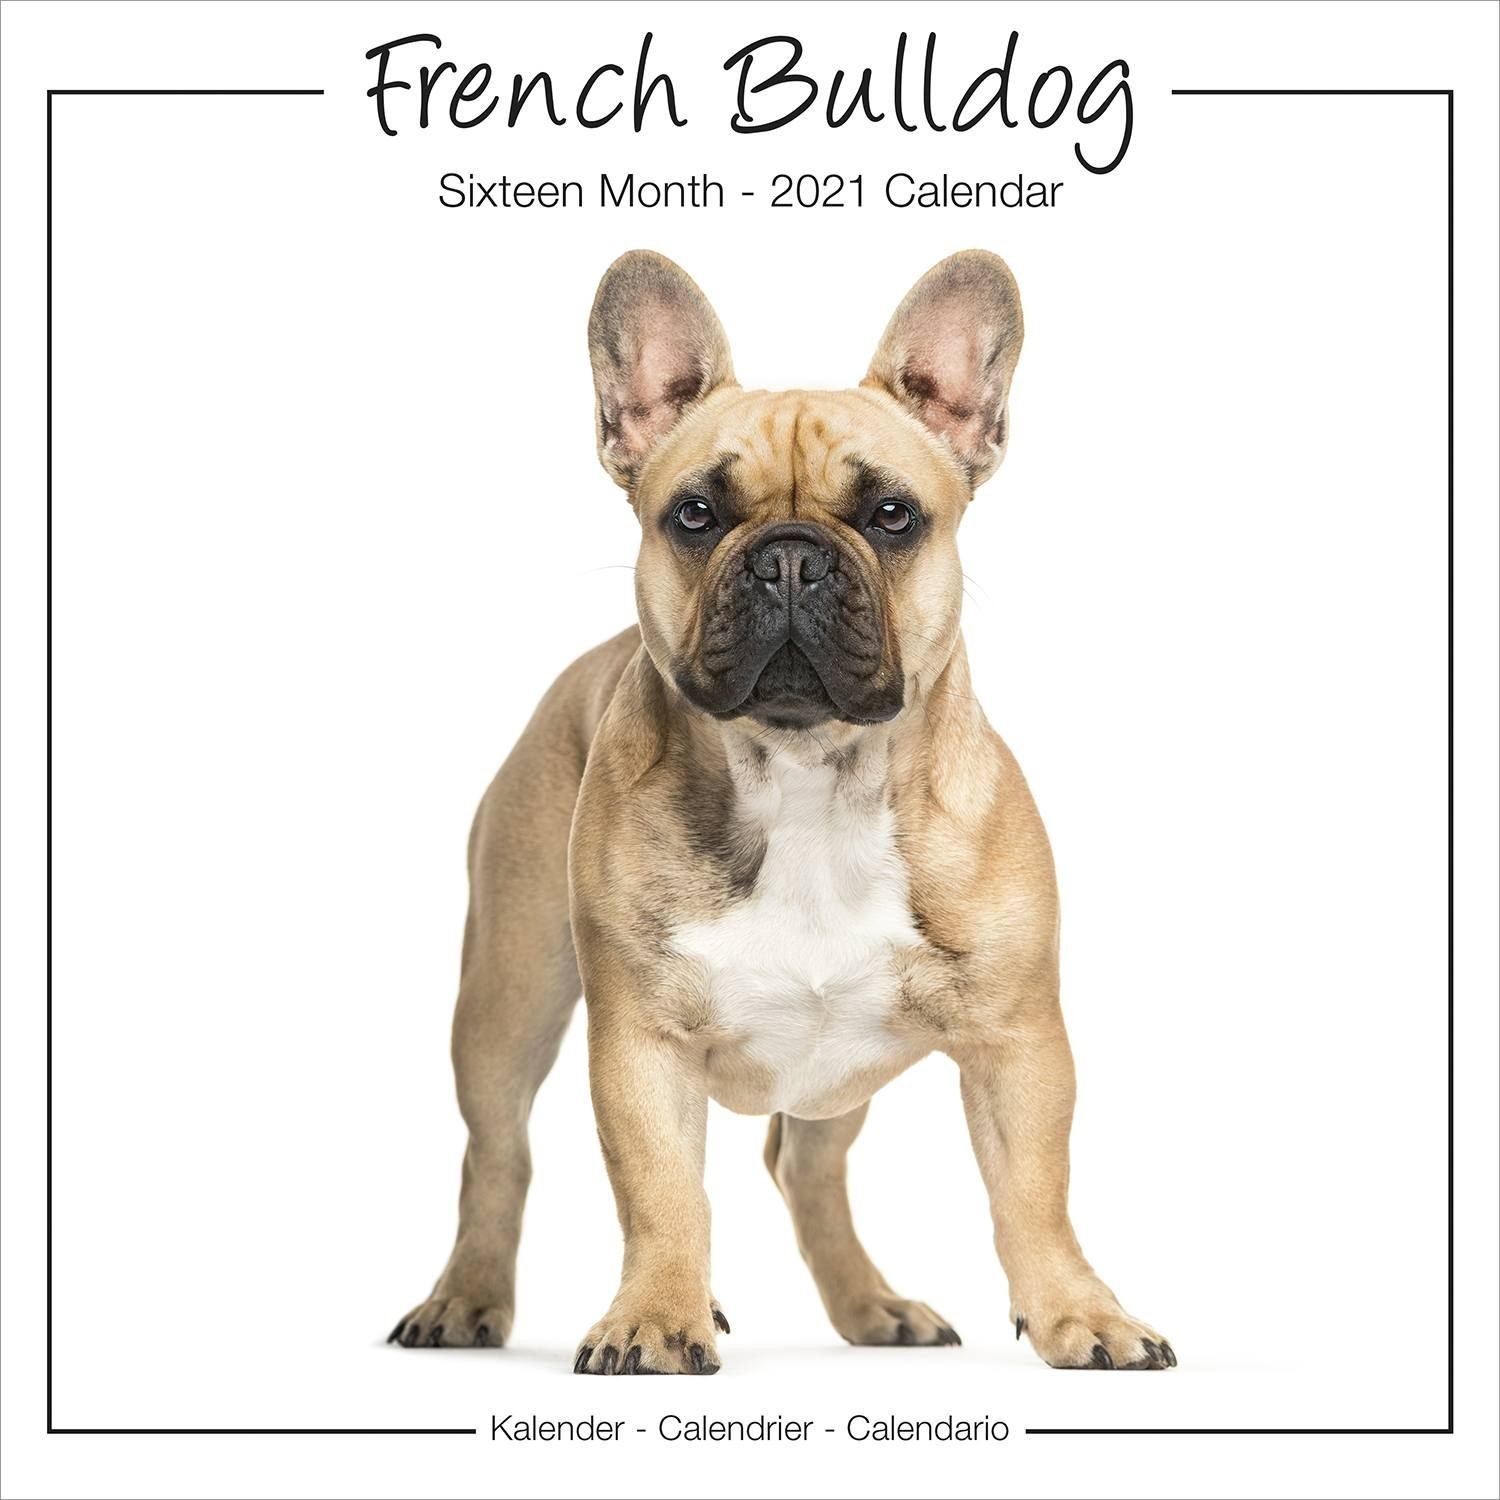 French Bulldog Studio Range Wall Calendar 2021